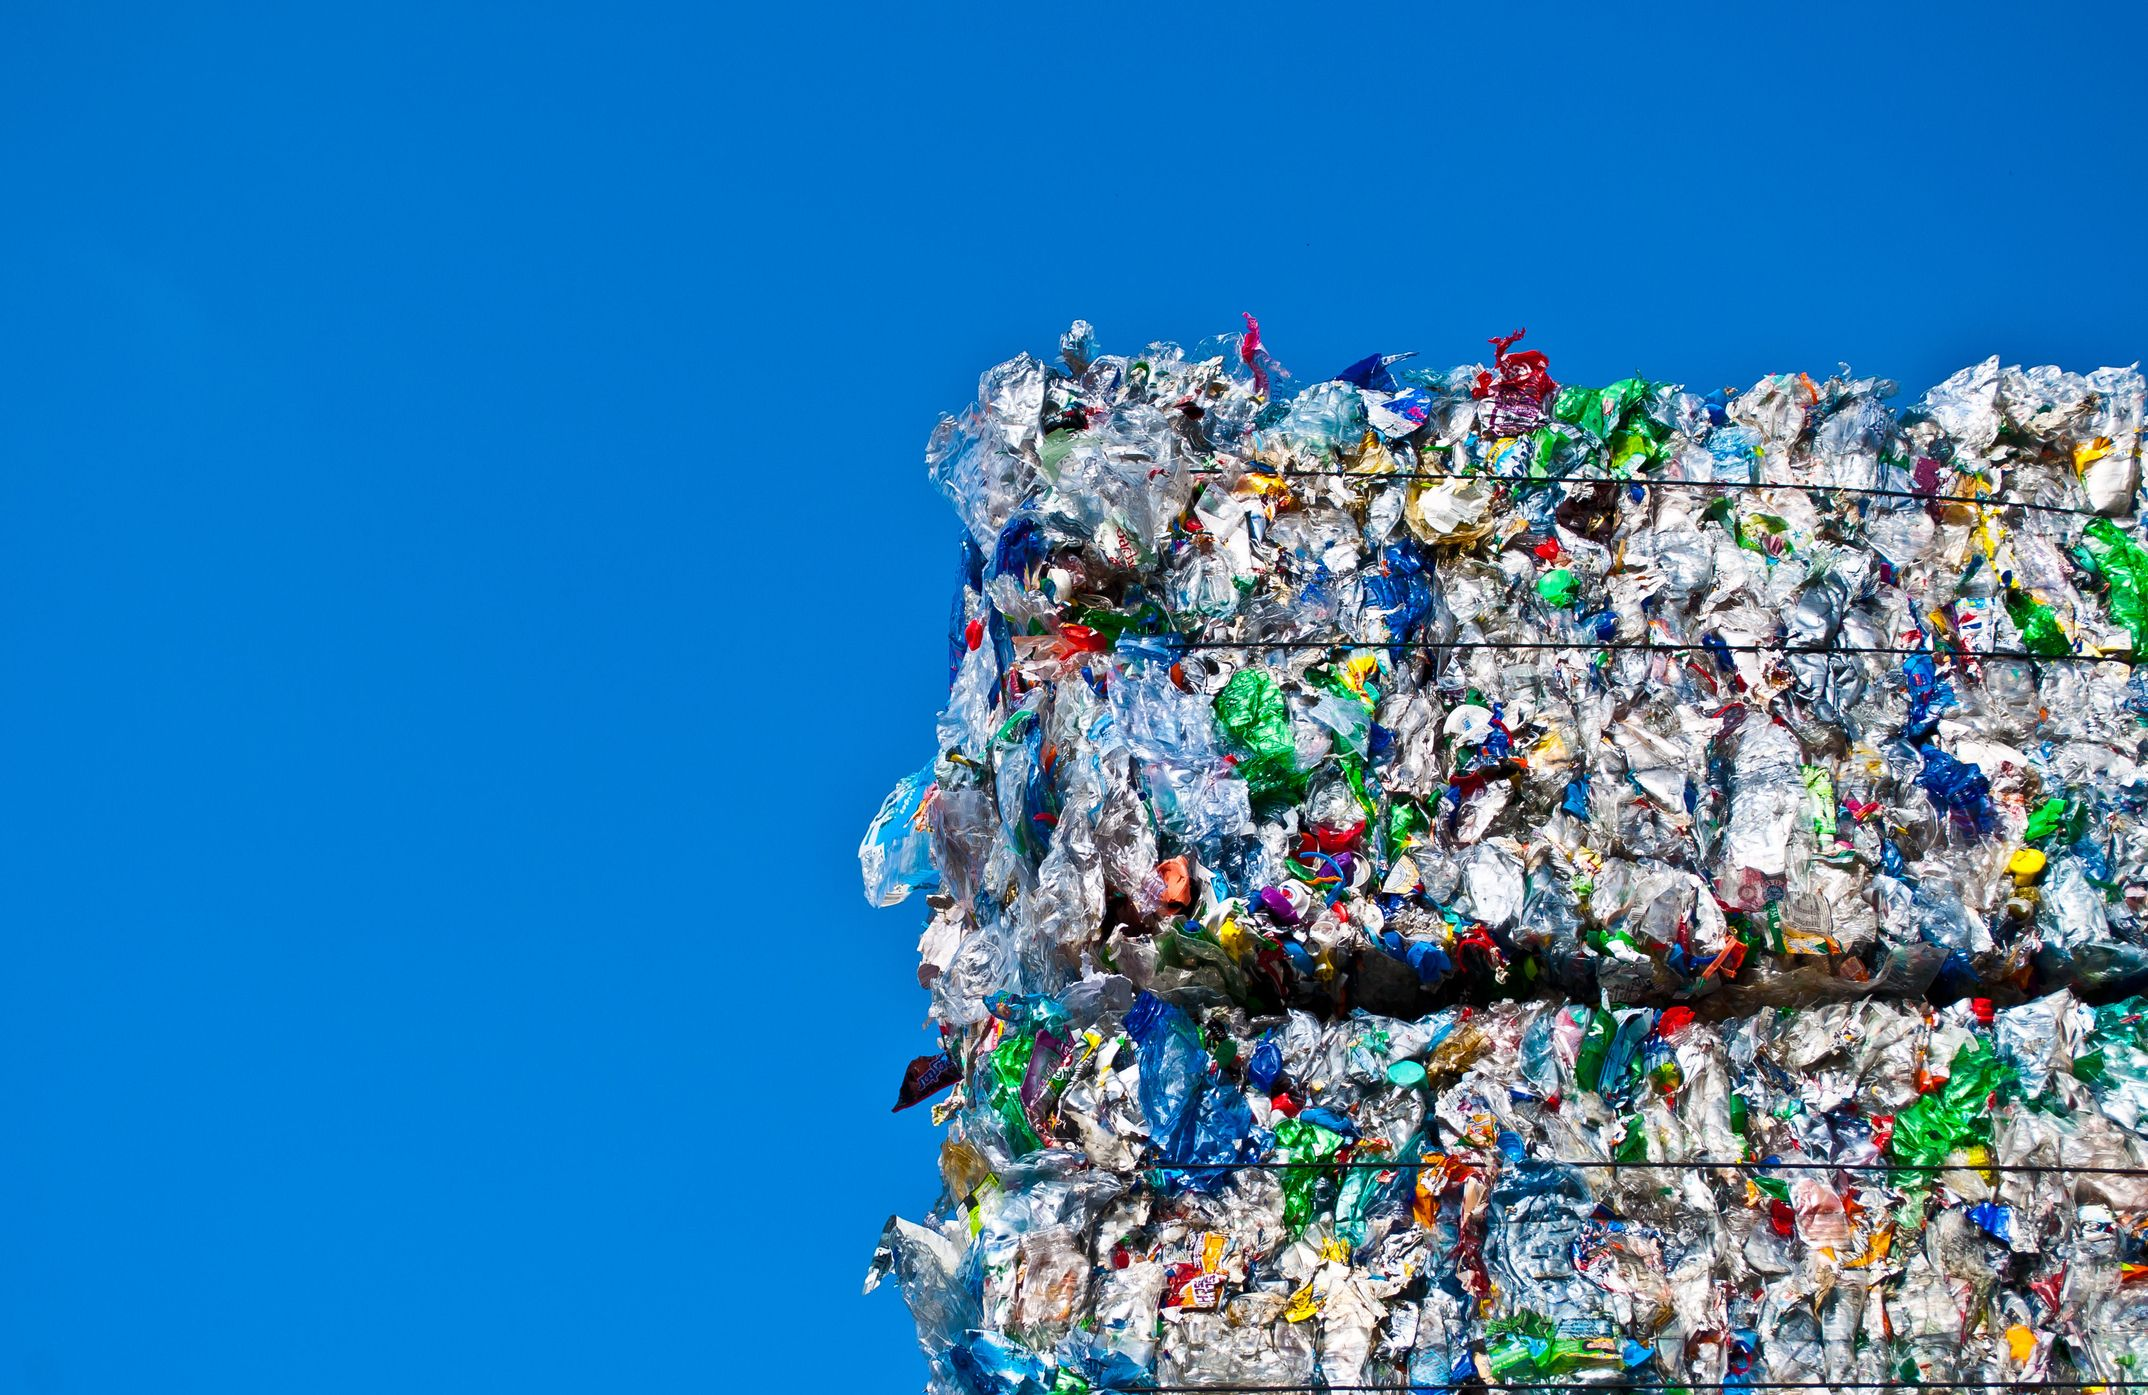 baled plastic waste recovered from the municipal solid